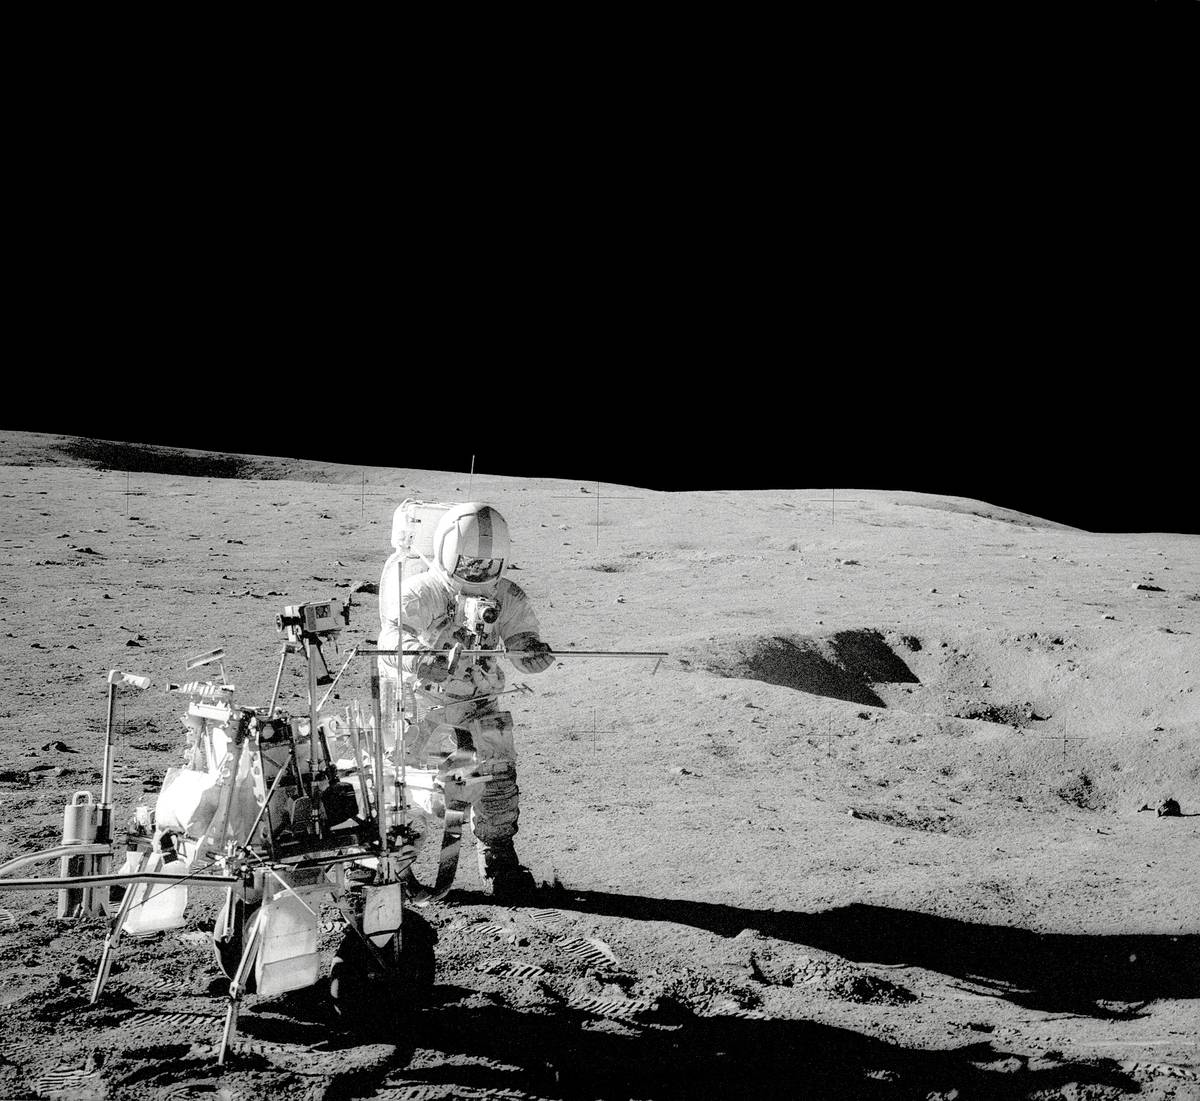 Apollo 14's Mission To The Moon